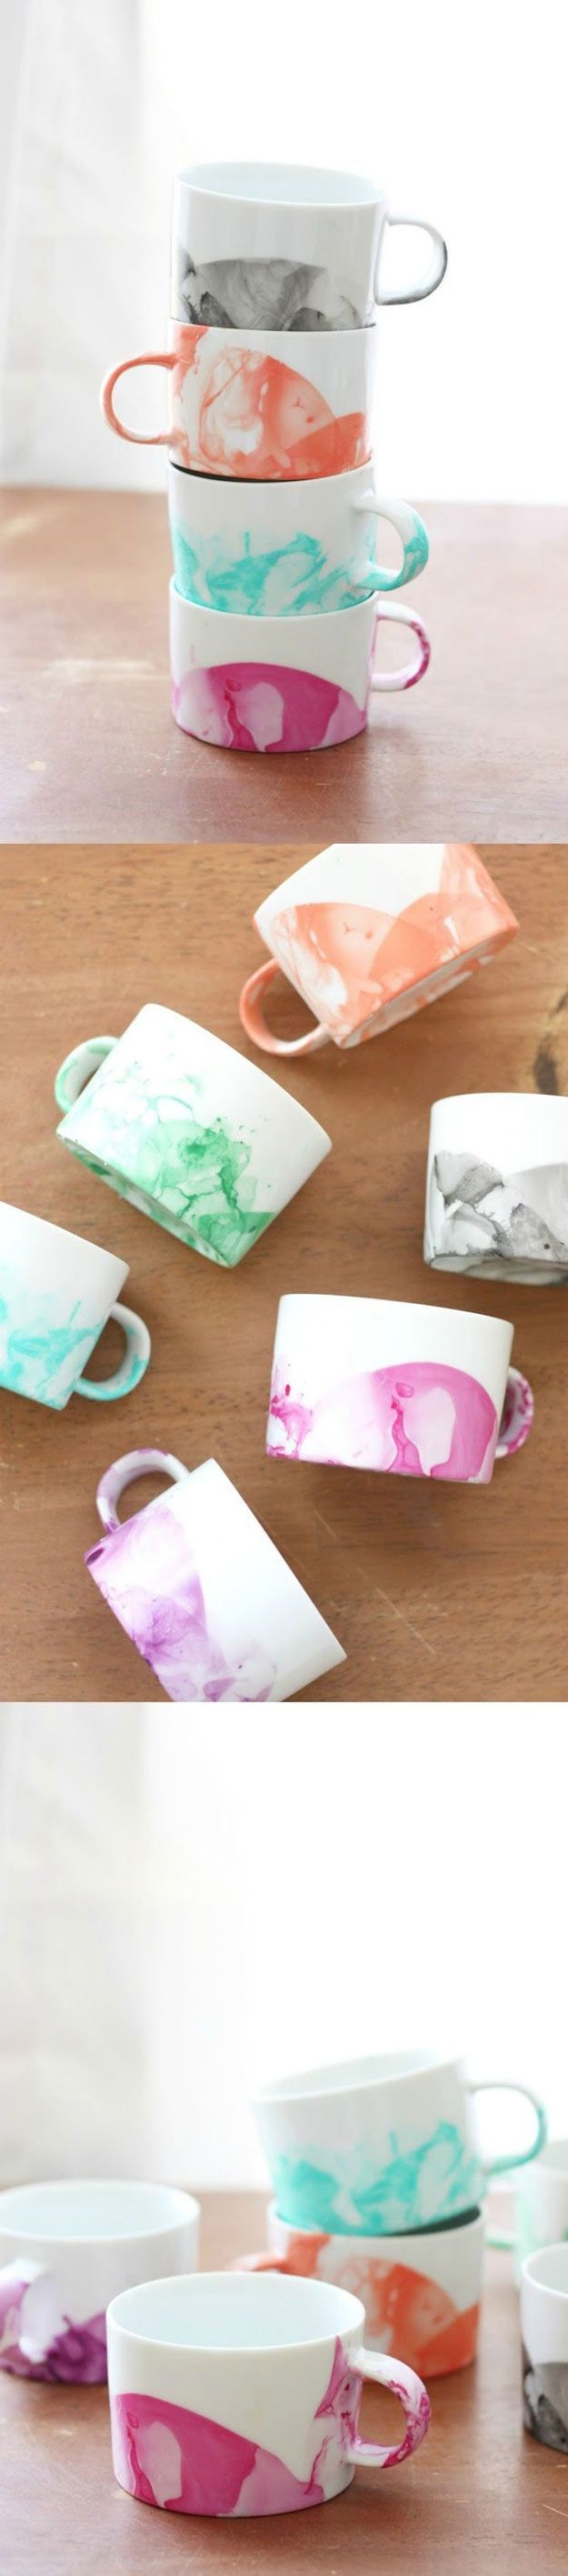 17 best images about crafts on pinterest for Cool fun easy crafts